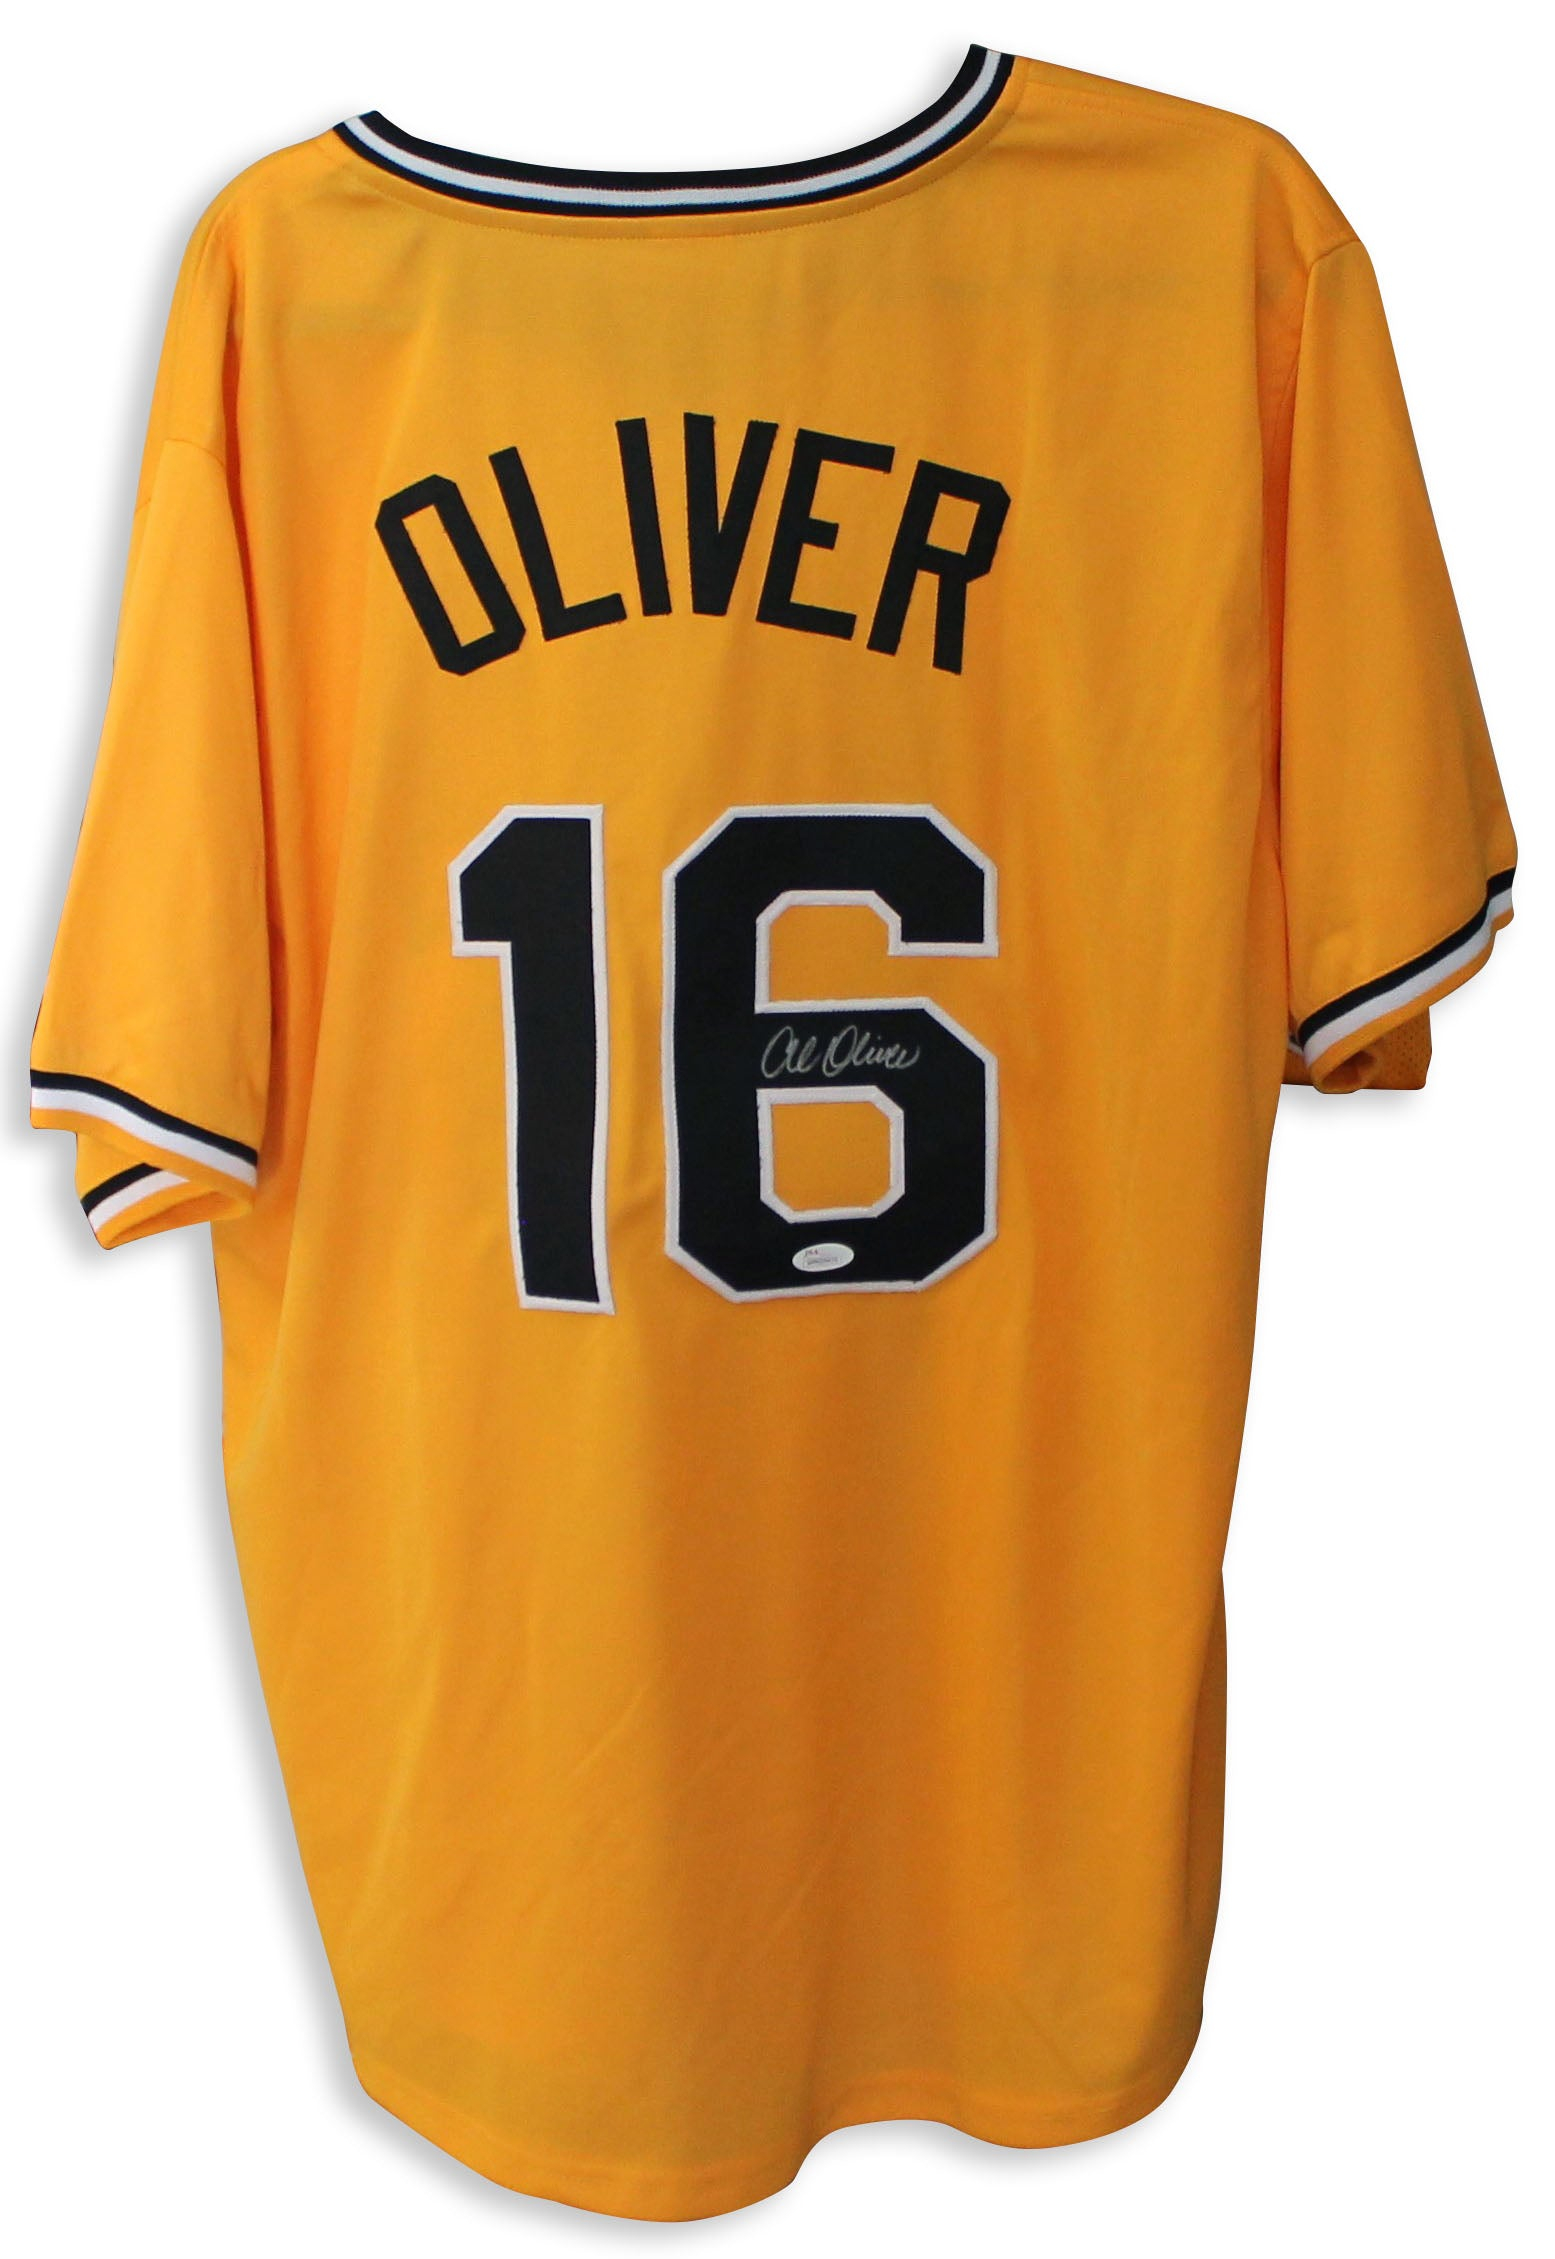 online store 4666d 2bf9b Al Oliver Pittsburgh Pirates Autographed Yellow Jersey PSM